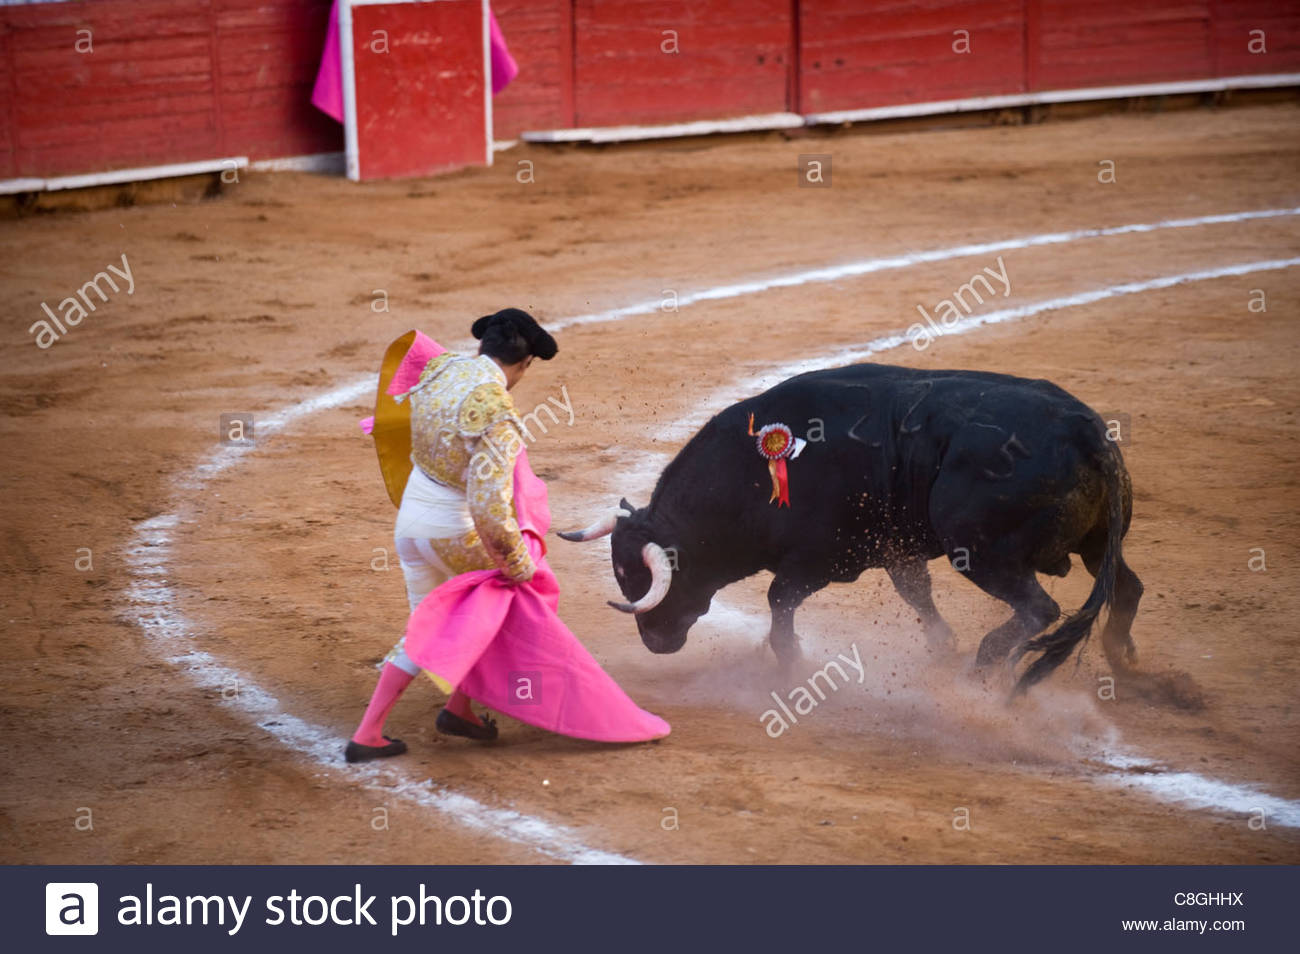 At a bullfight in Mexico City, a bull with lowered head charges. - Stock Image